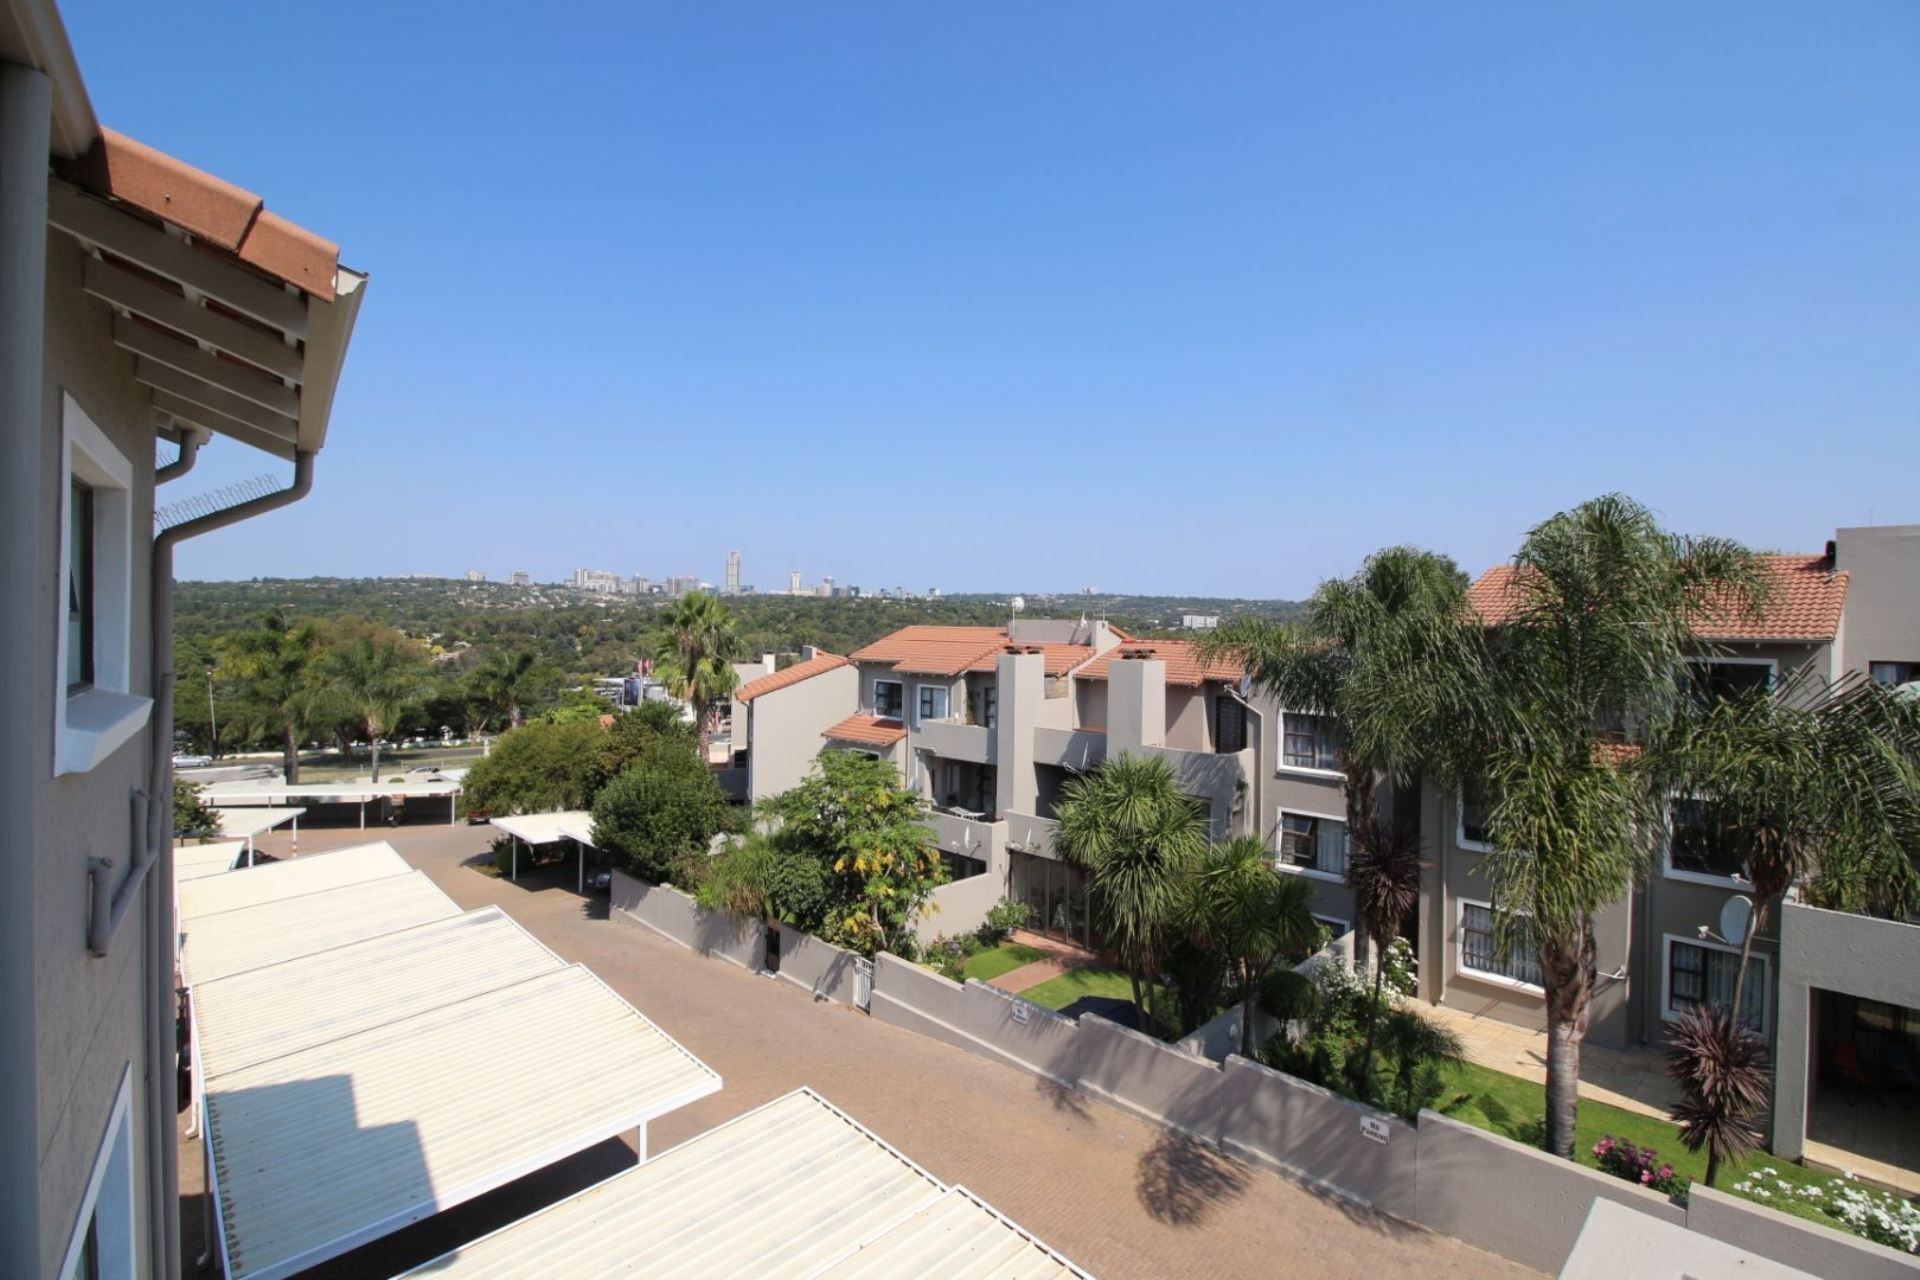 2 Bedroom Apartment to Rent in Bryanston